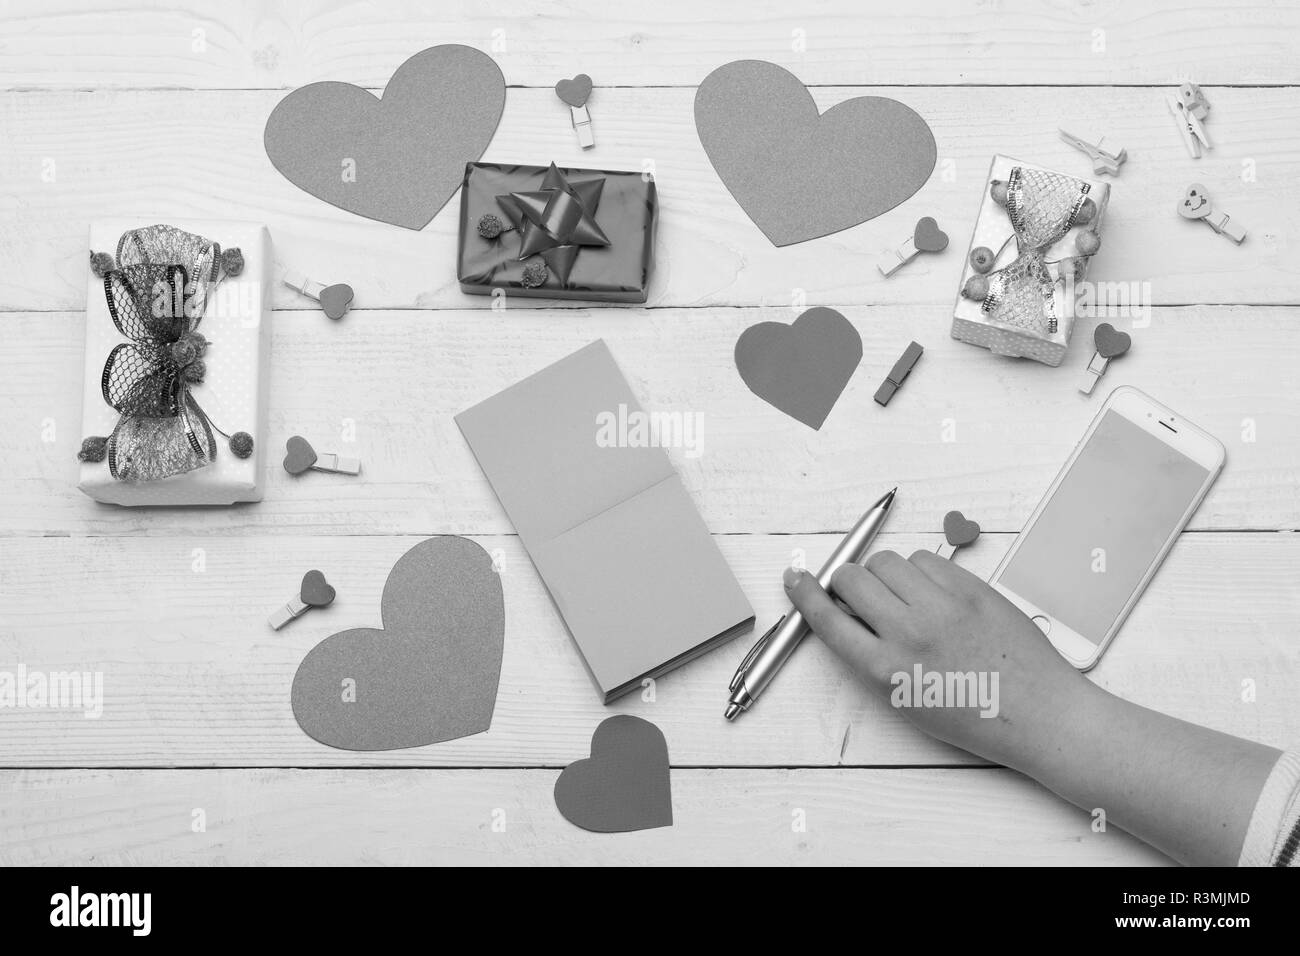 Valentines day cards, decorations and presents, top view. Love and holiday concept. Female hand holding pen. Paper hearts, notes, mobile phone and peg - Stock Image